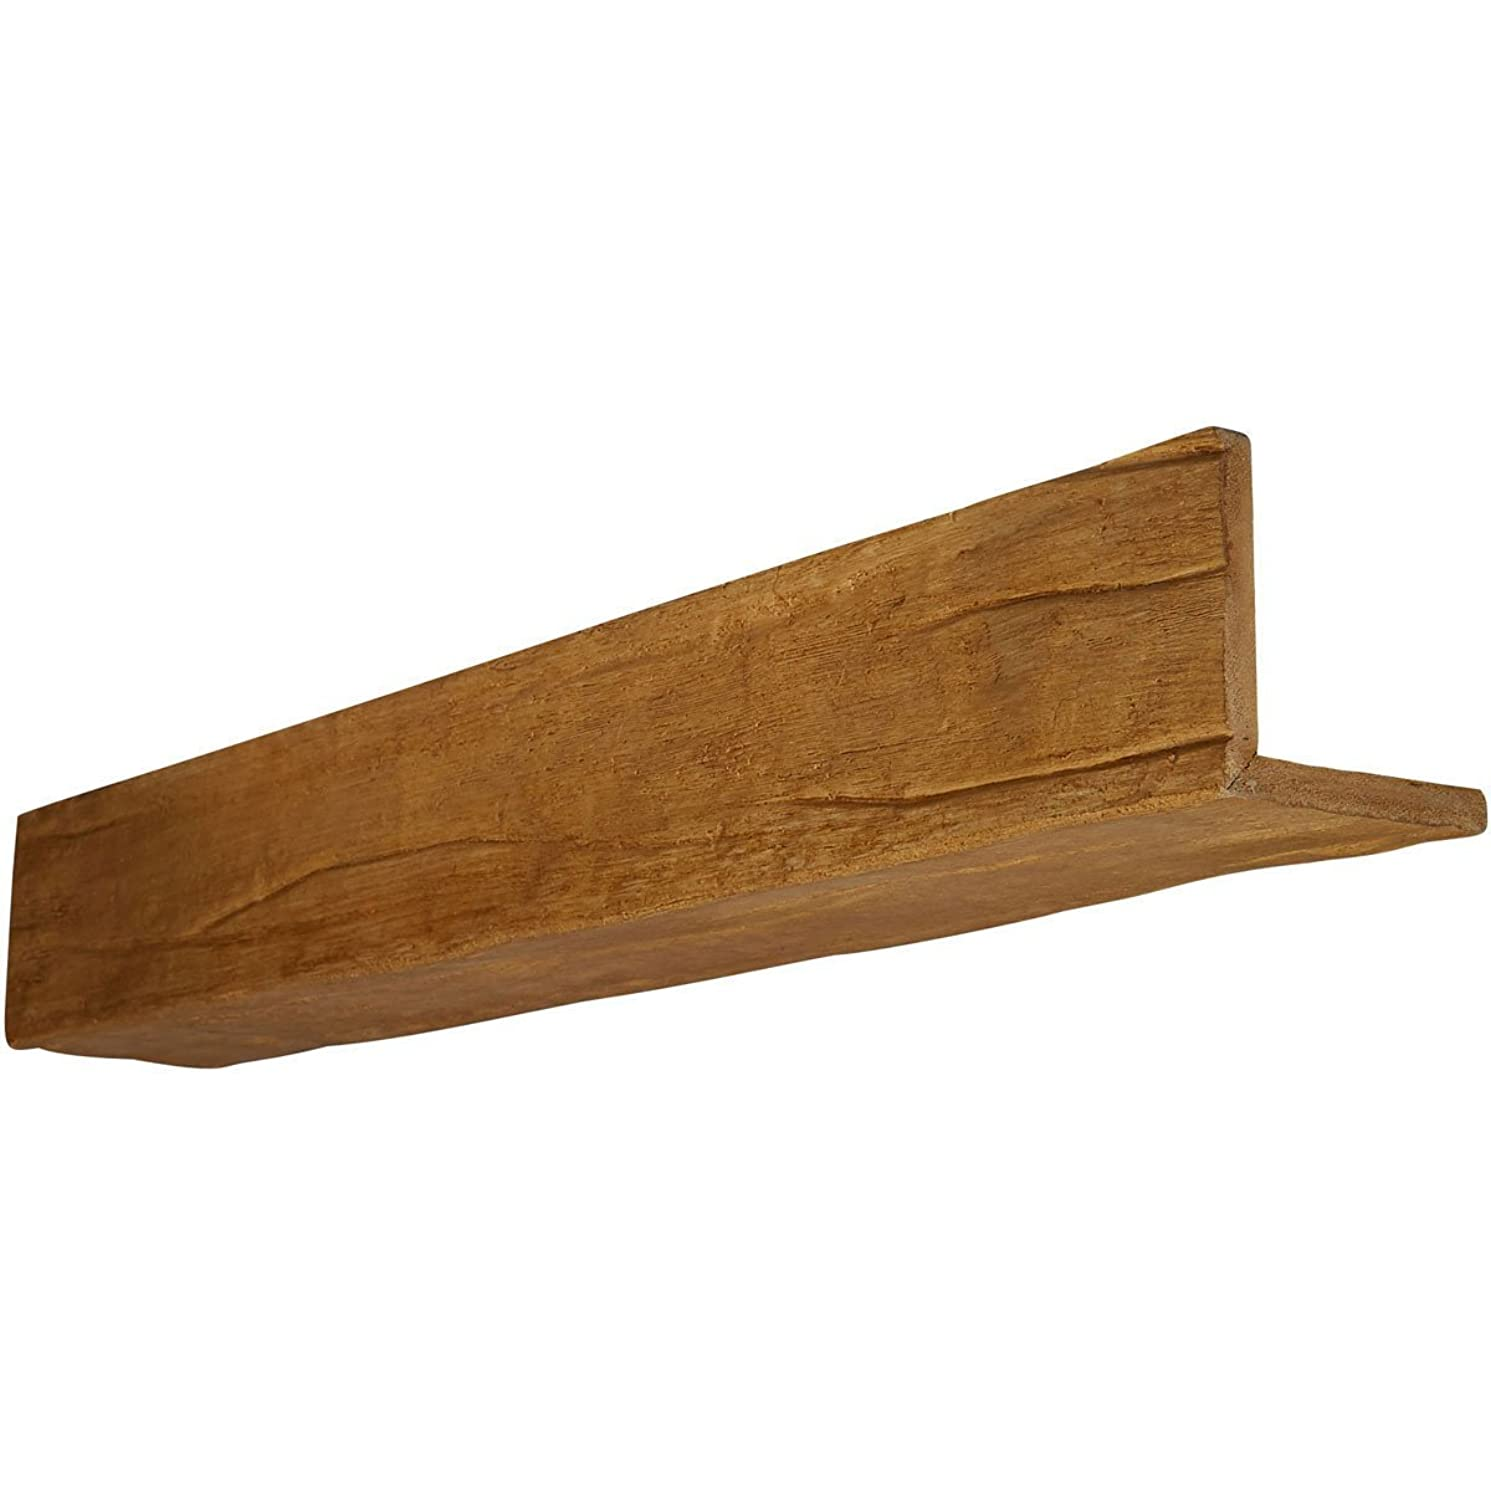 Ekena Millwork BMRW2C0080X040X120PP 2-Sided (L-Beam) Riverwood Faux Wood Beam, Puritan Pine, 8